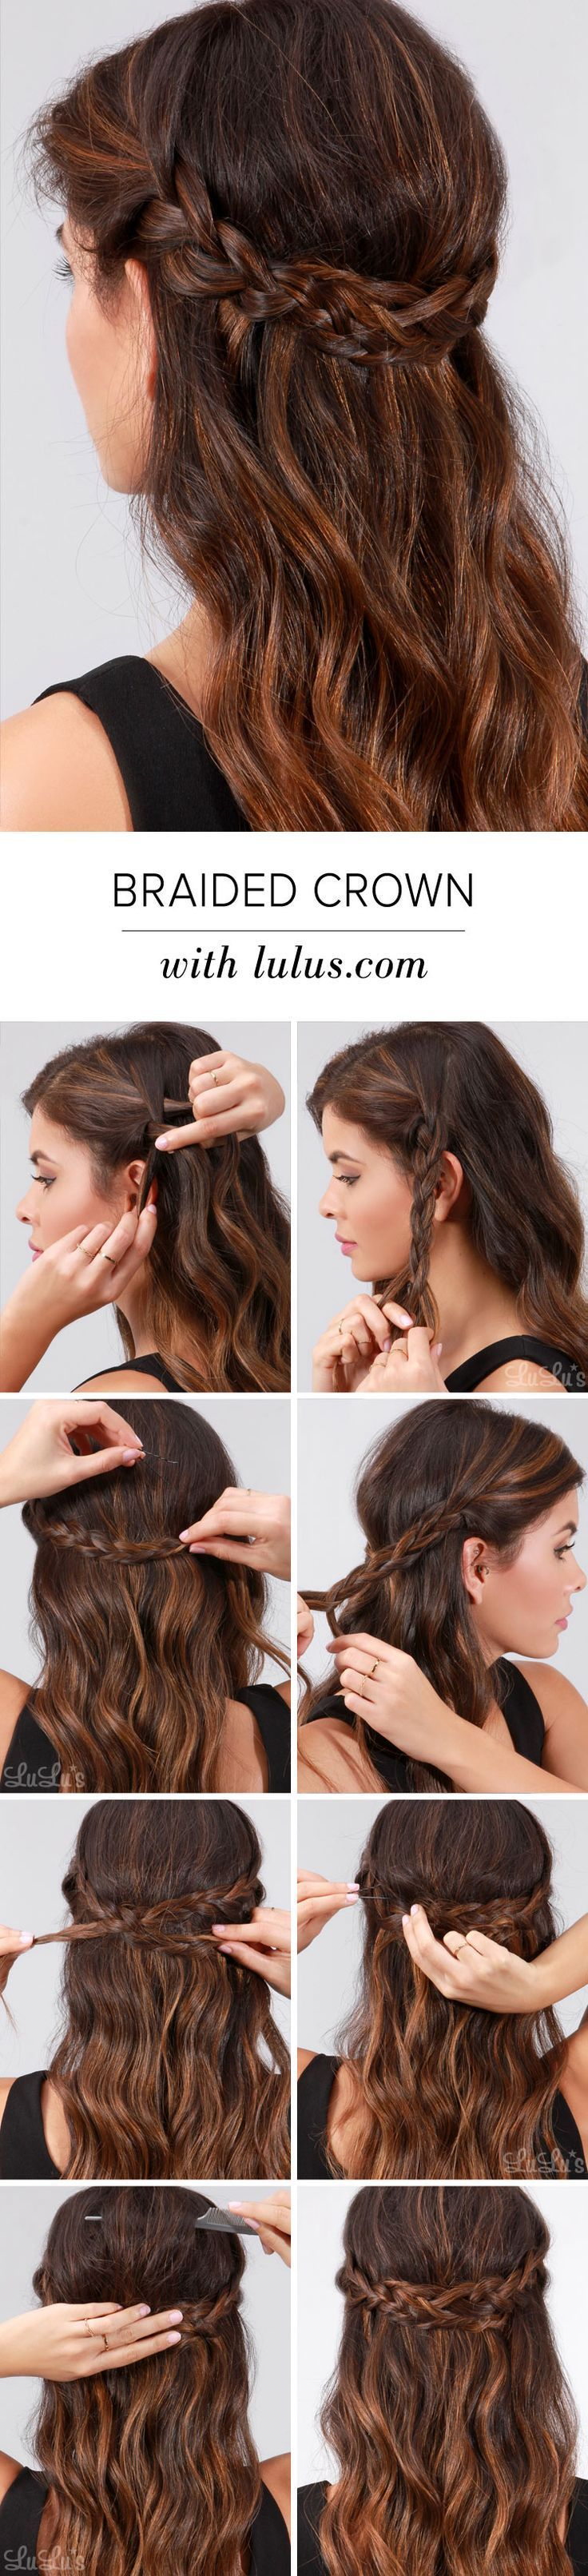 508 best Hair Tutorials images on Pinterest